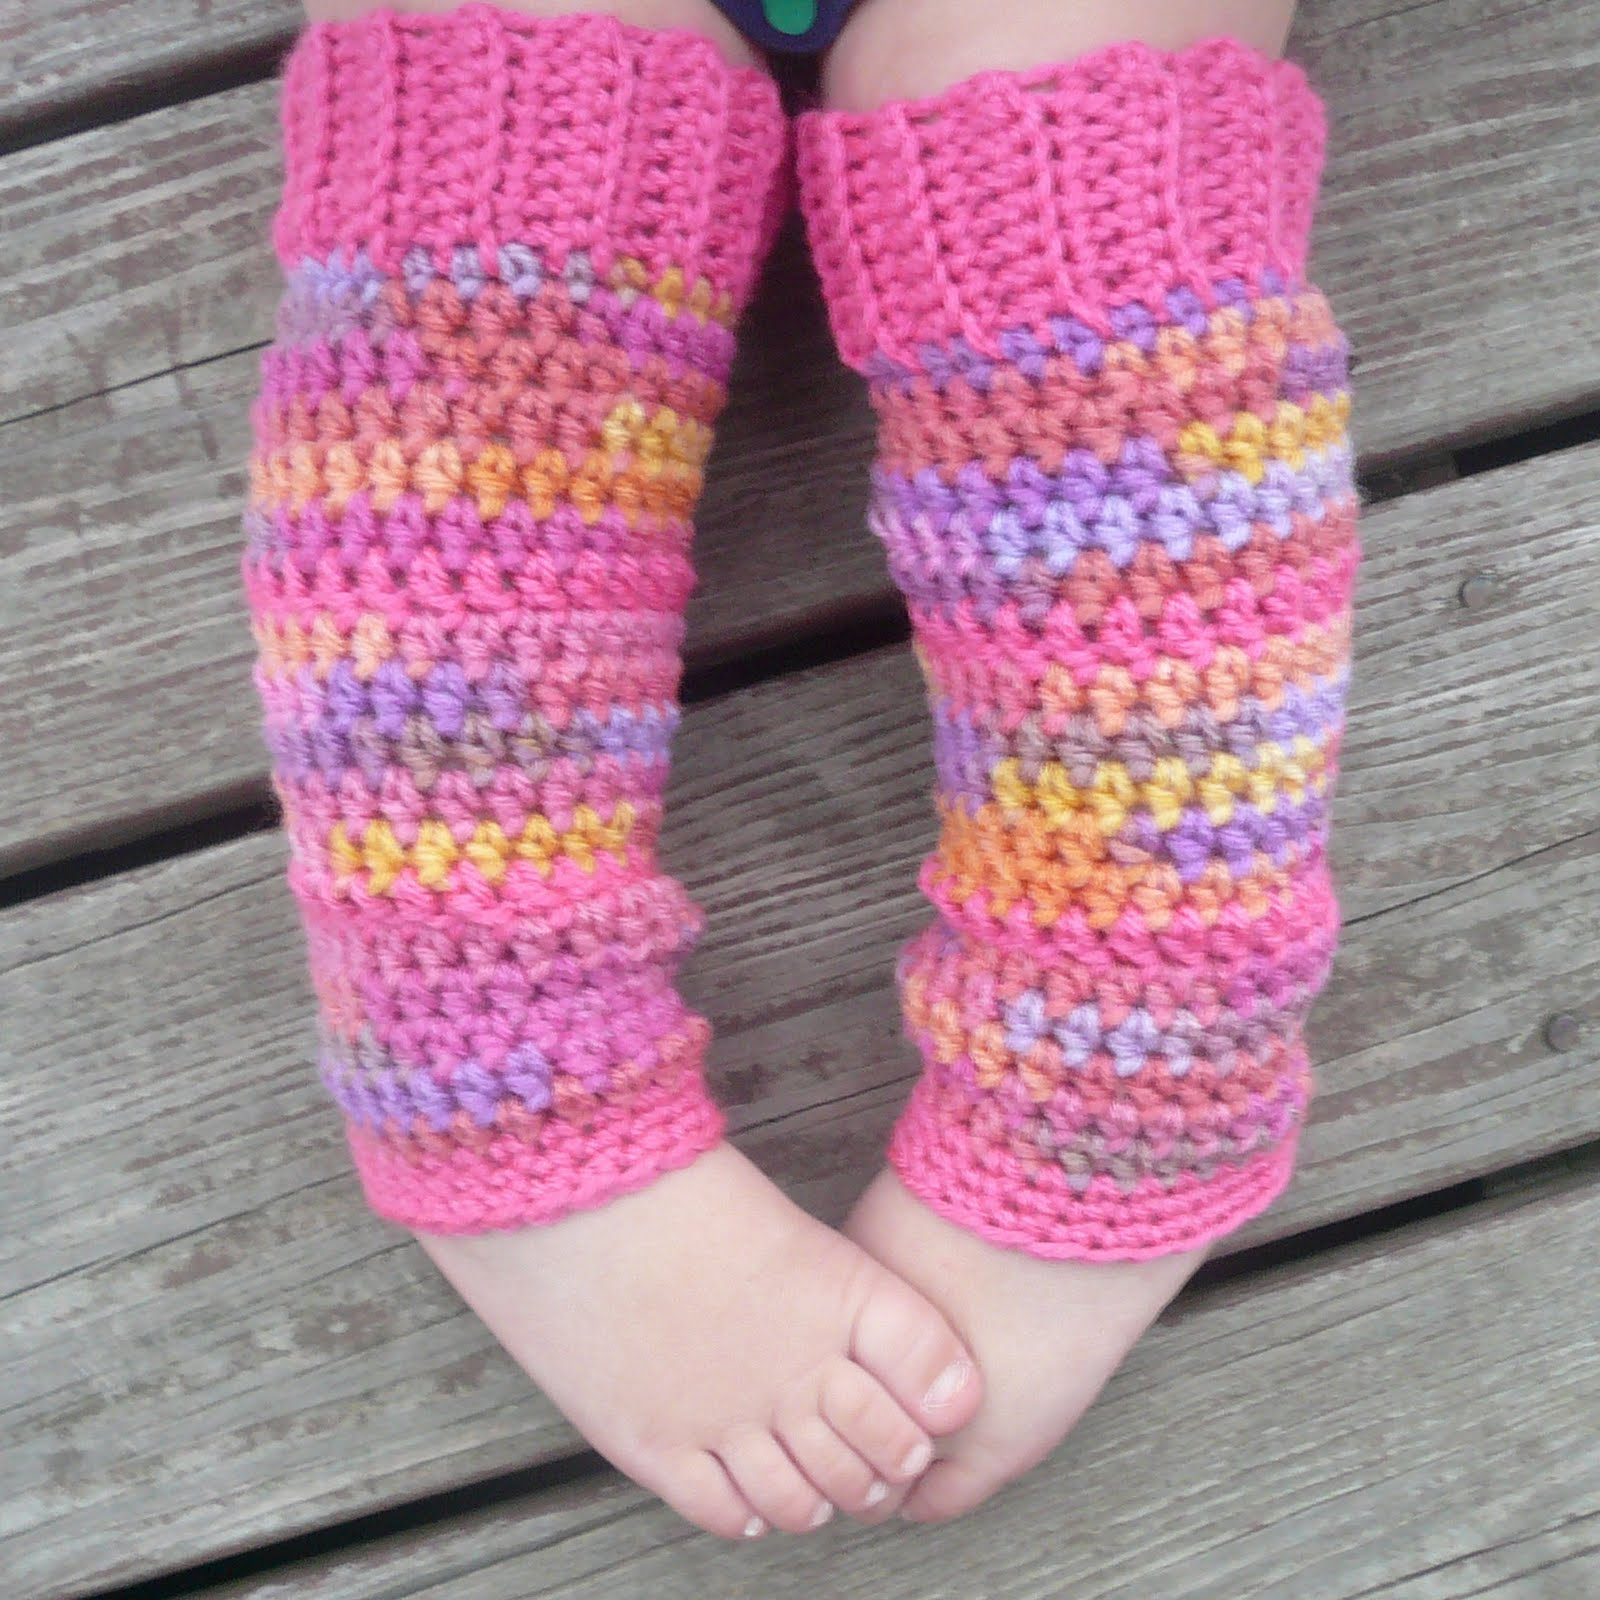 Free Baby Legs. Wow! Get 5 FREE Pairs of these adorable Baby Legs Leg Warmers ($50 Value)! Use Coupon Code: ENBABY to get this freebie. All you have to do is .